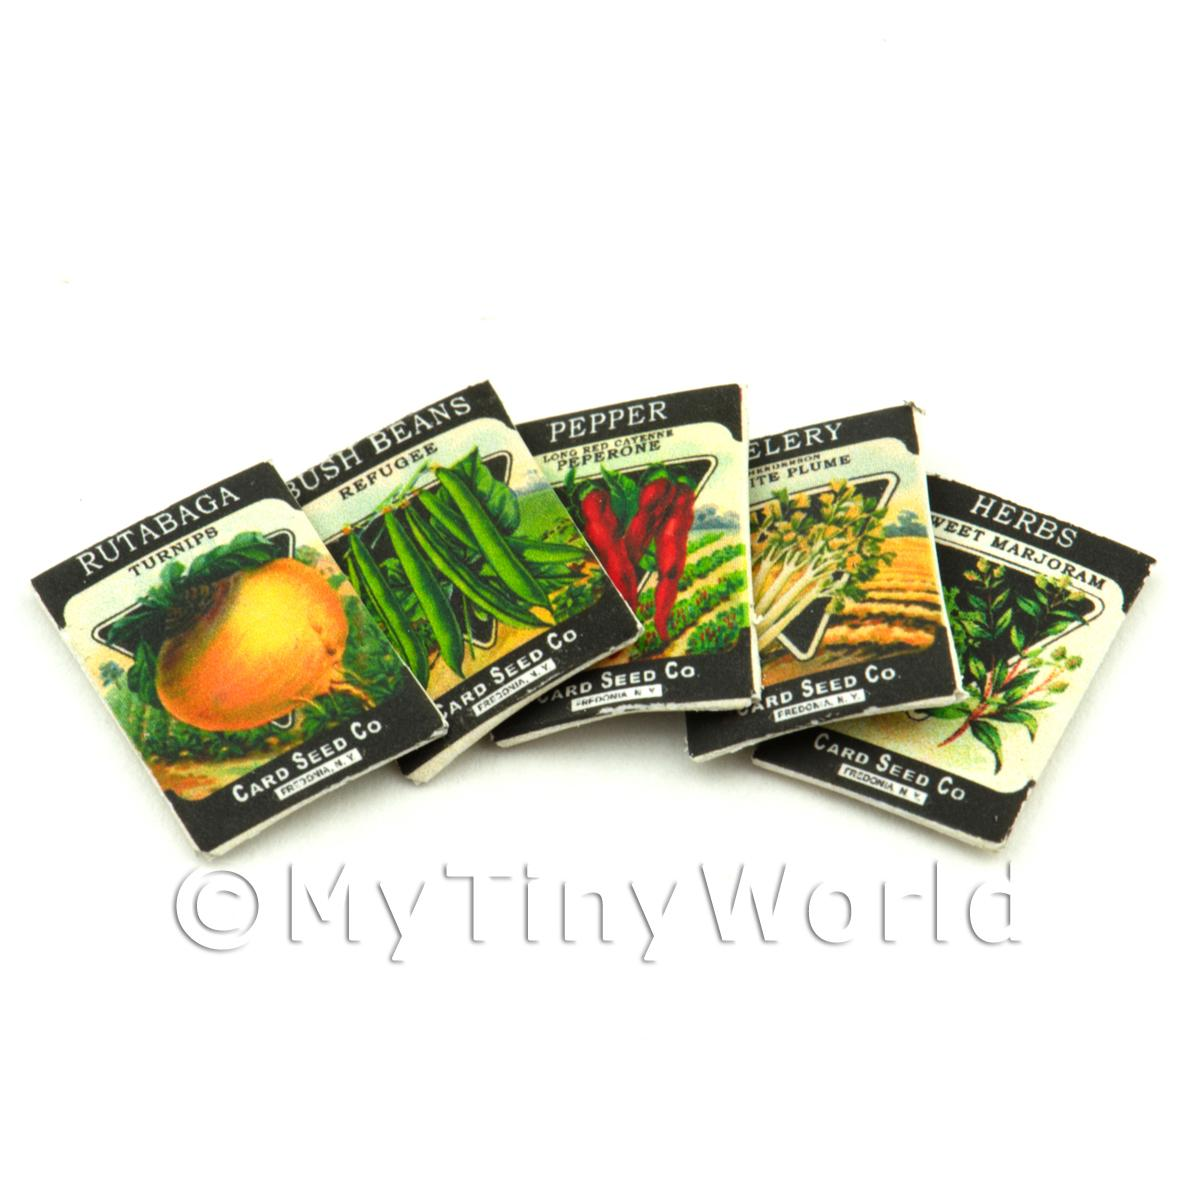 Set of 5 Dolls House Miniature Seed Packets (SPMS05)